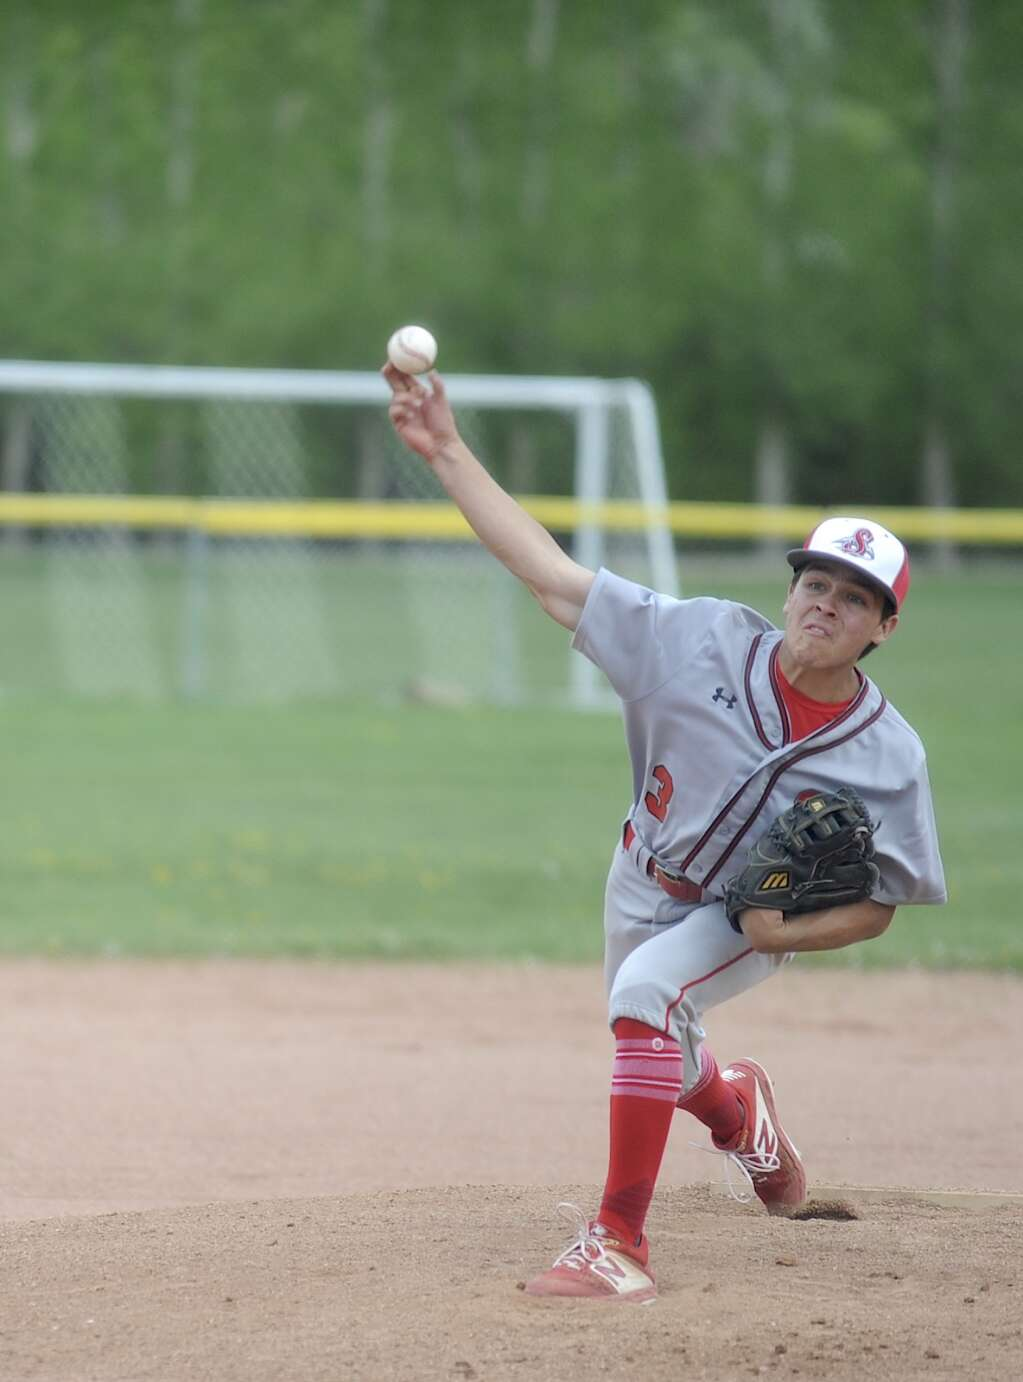 Steamboat Springs senior Austin Ibarra threw a complete game as the Sailors baseball team hosted Glenwood Springs on Tuesday evening.